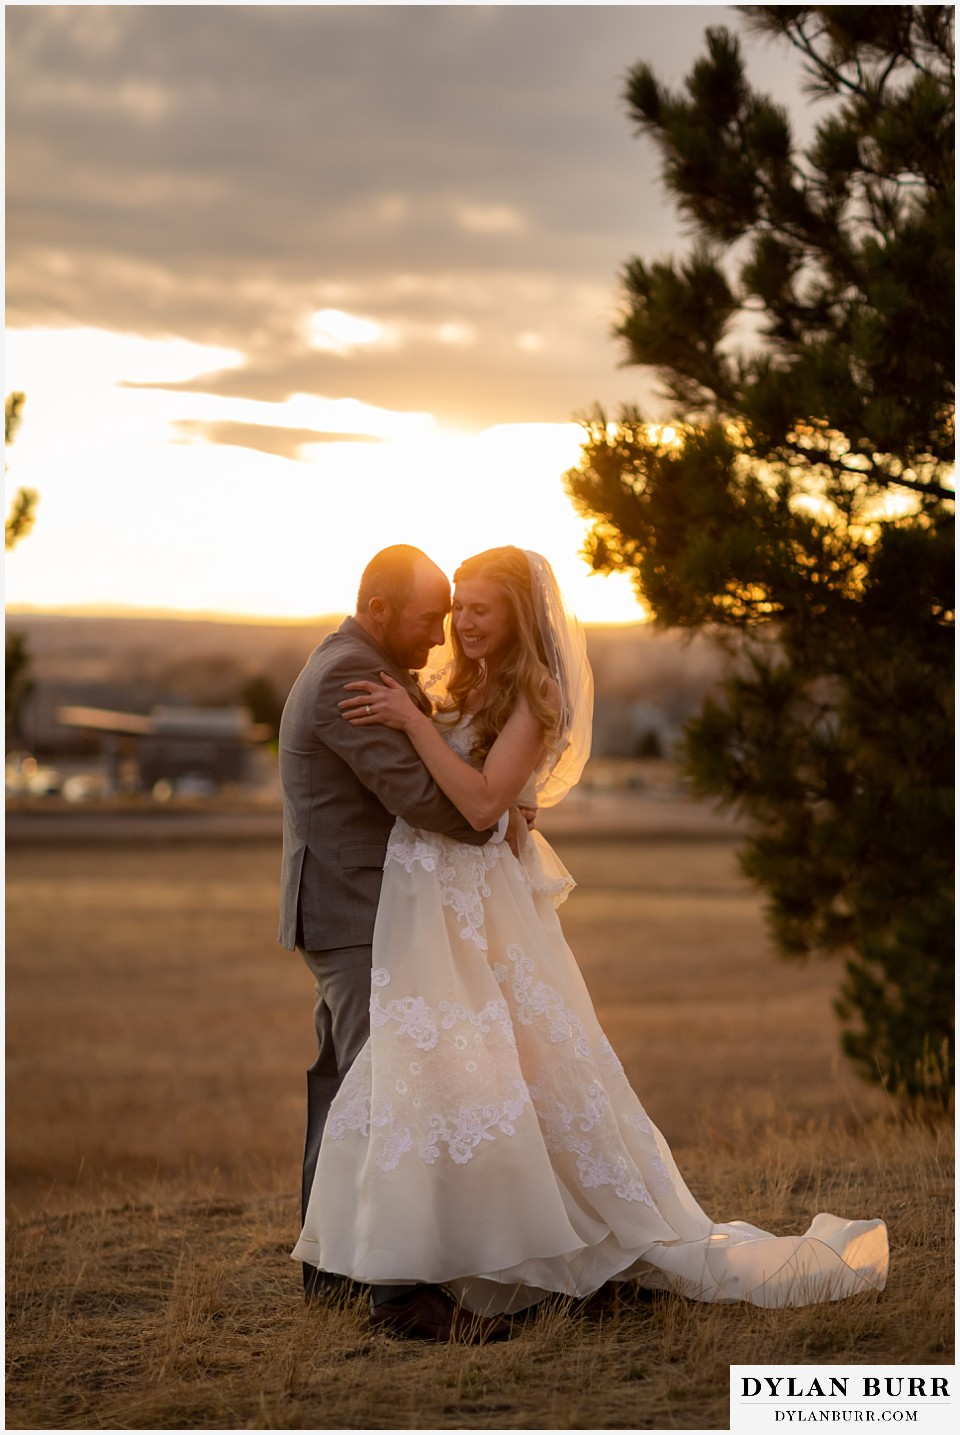 villa parker wedding parker colorado bride and groom snuggling in close at sunset